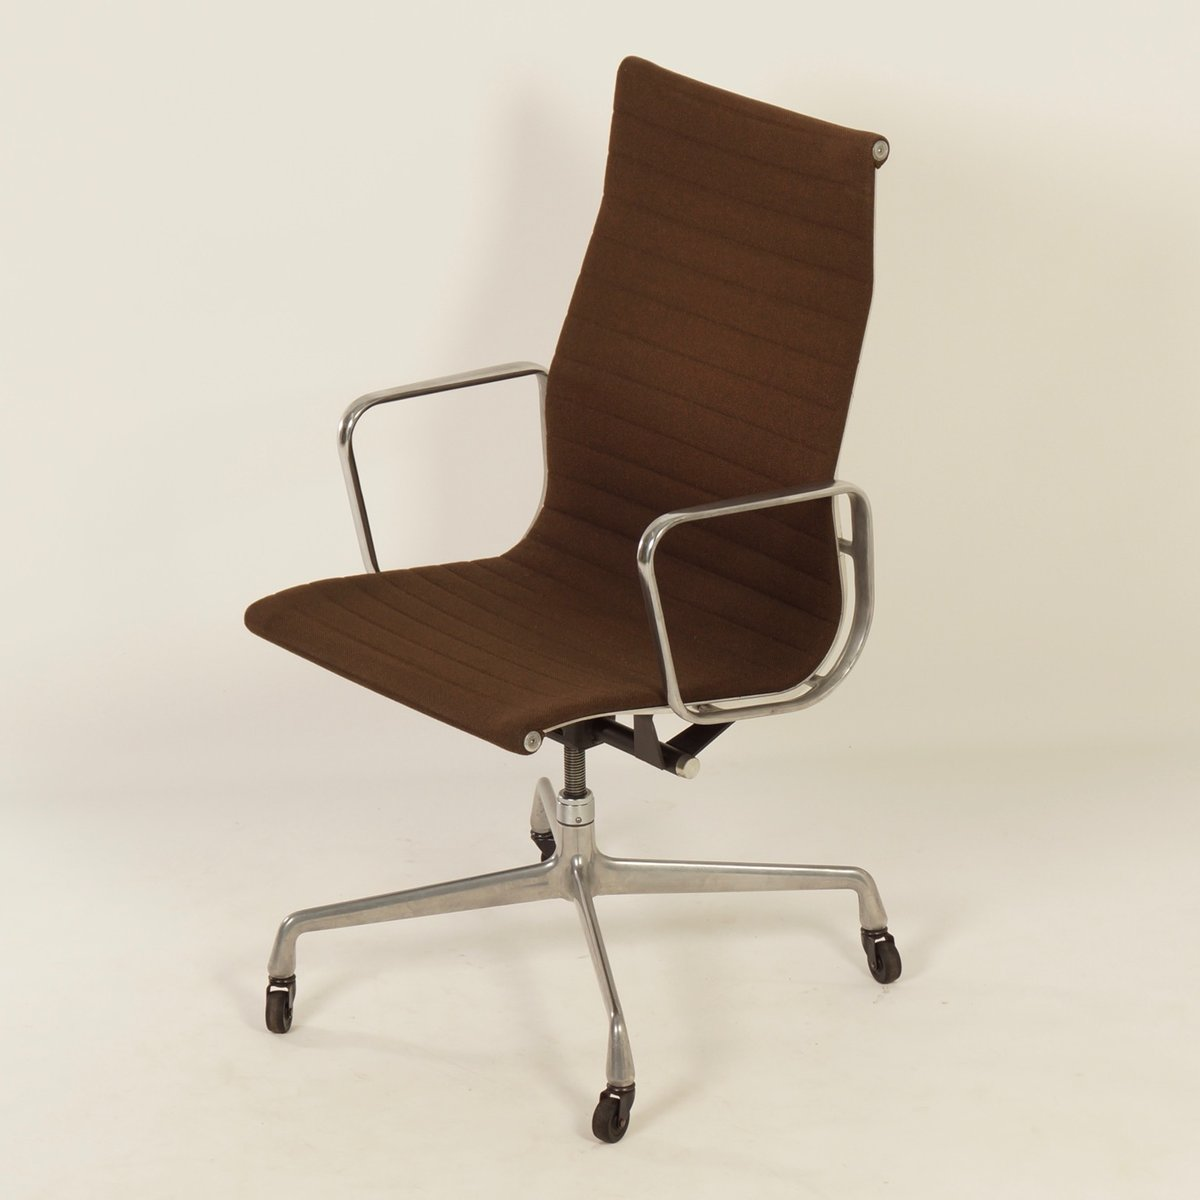 Charles And Ray Eames Chair Office Chair By Charles And Ray Eames For Herman Miller